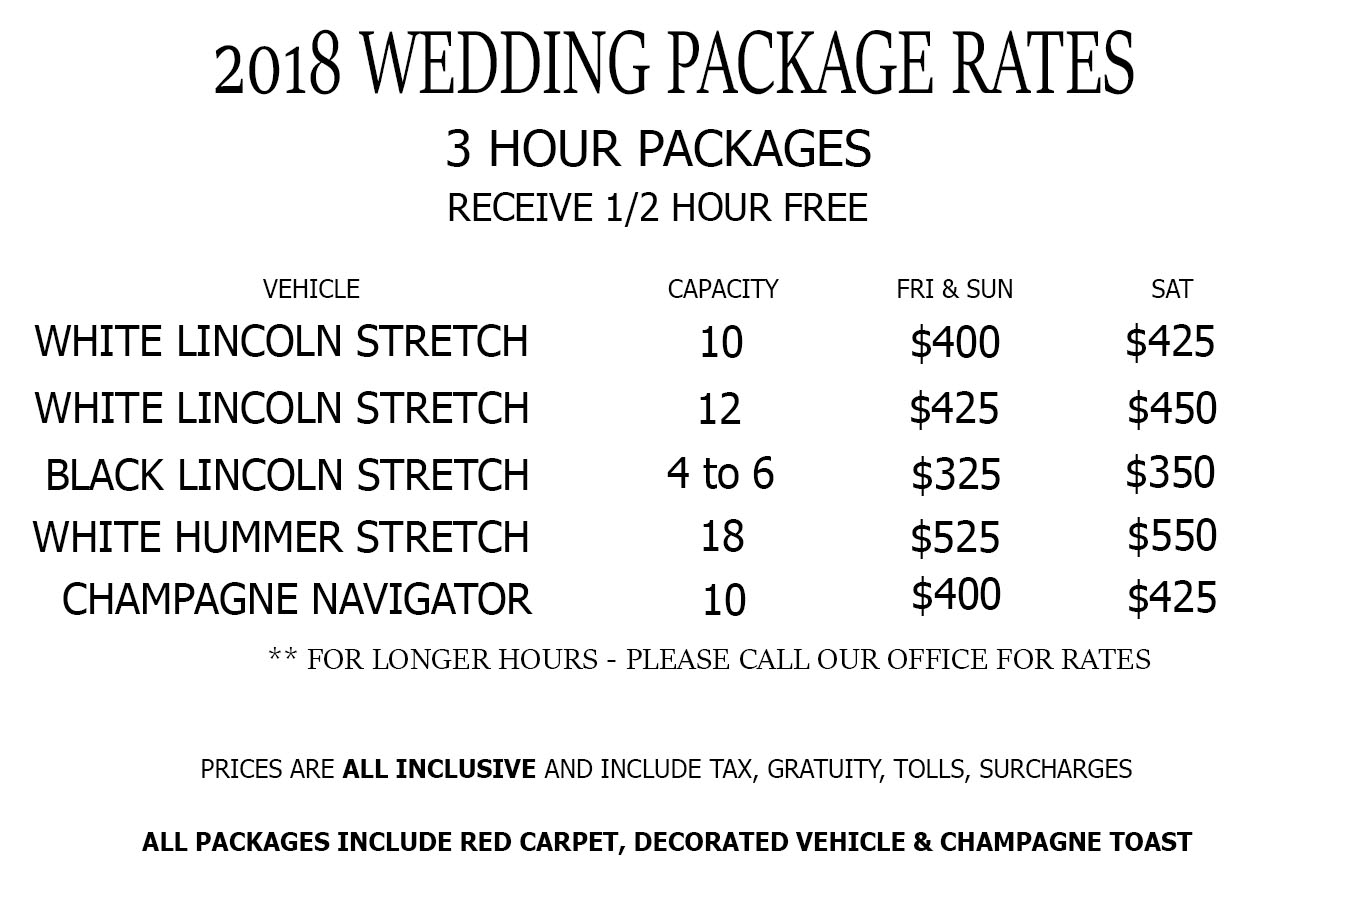 2018 Limo Wedding Rates NJ